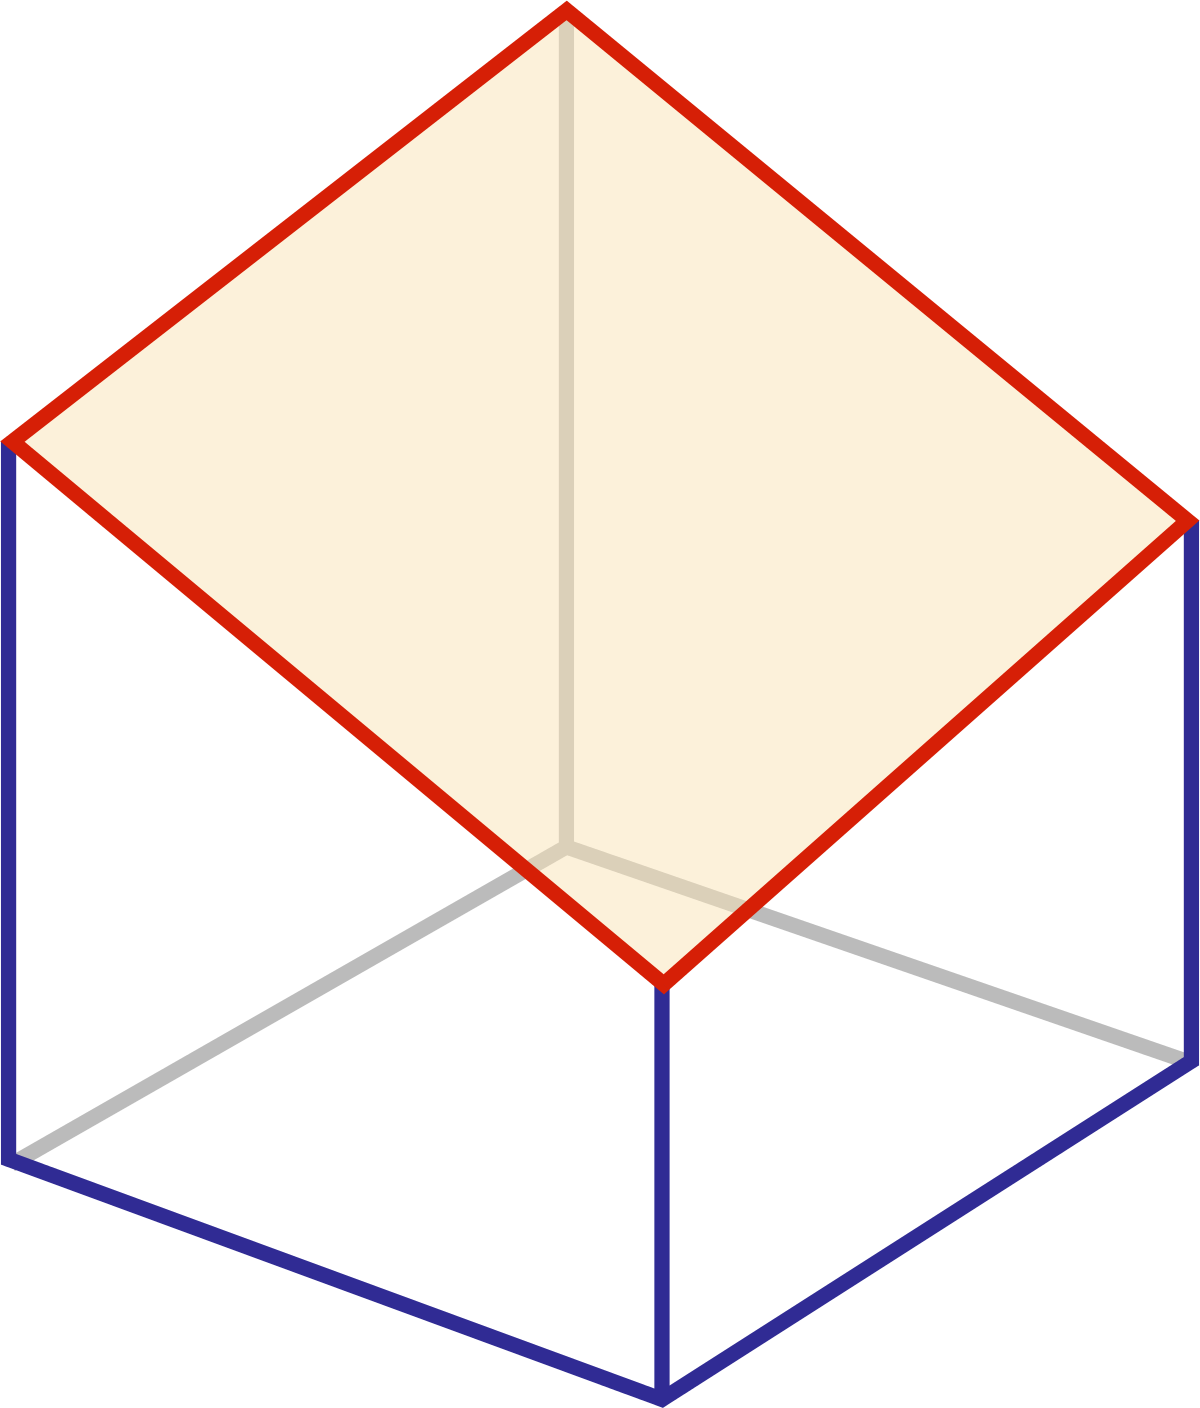 3d coordinate geometry equation of a plane math an infinite column is centered along the z axis it has a square cross section of side length equal to 10 it is cut by the plane 4x 7y 4z